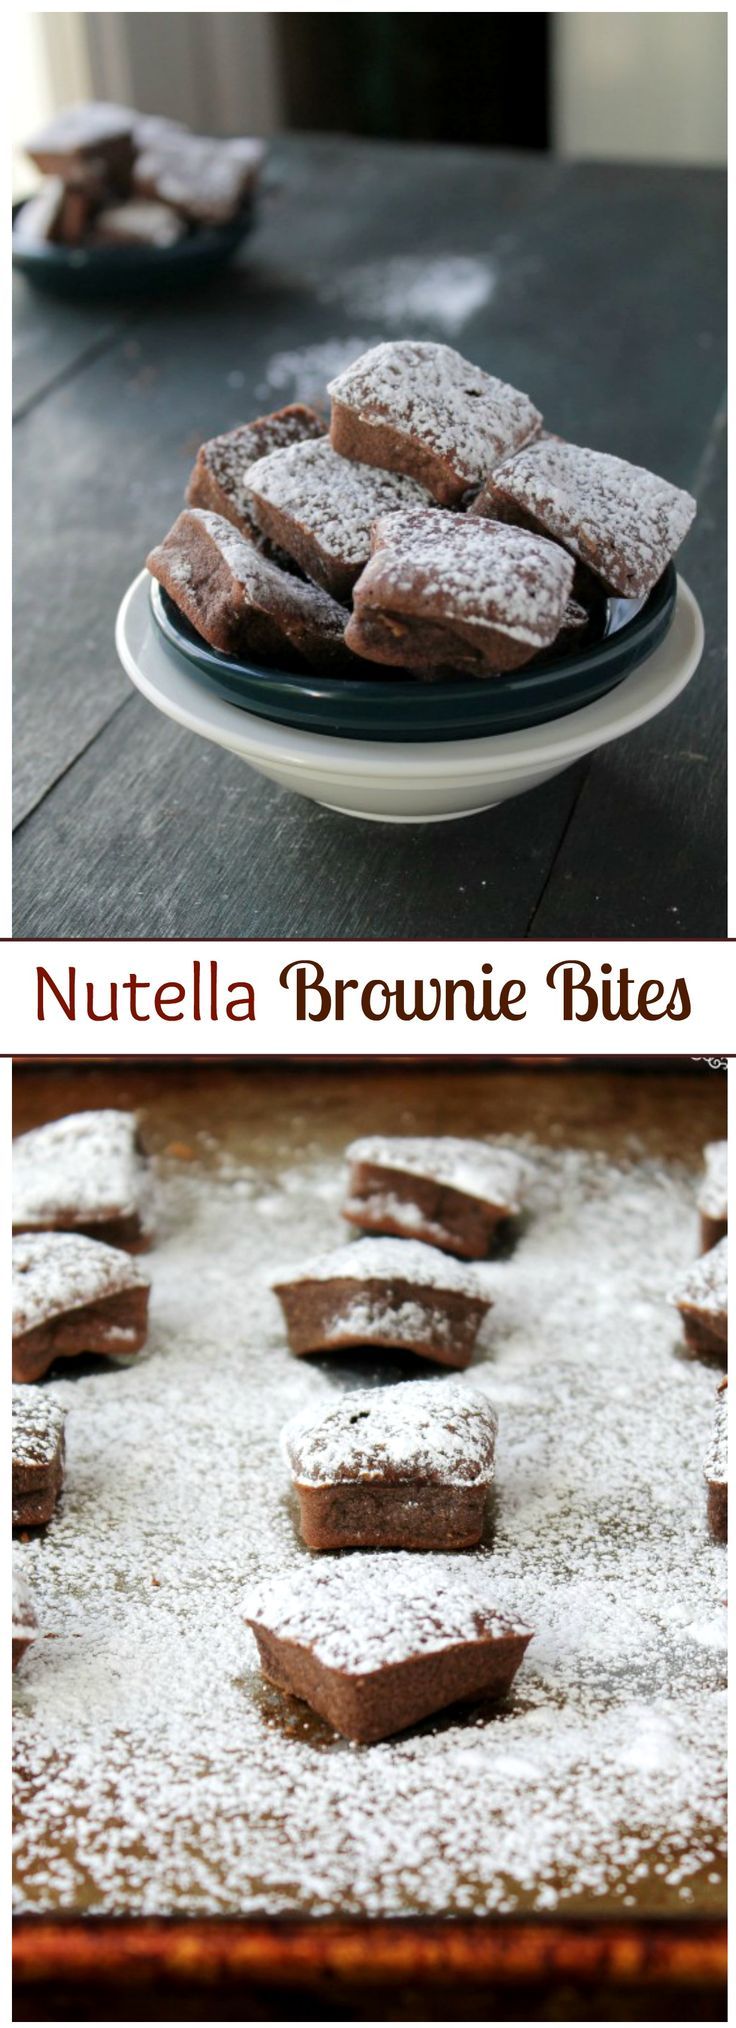 Nutella Brownie Bites - Bite-size Brownies made with Nutella!